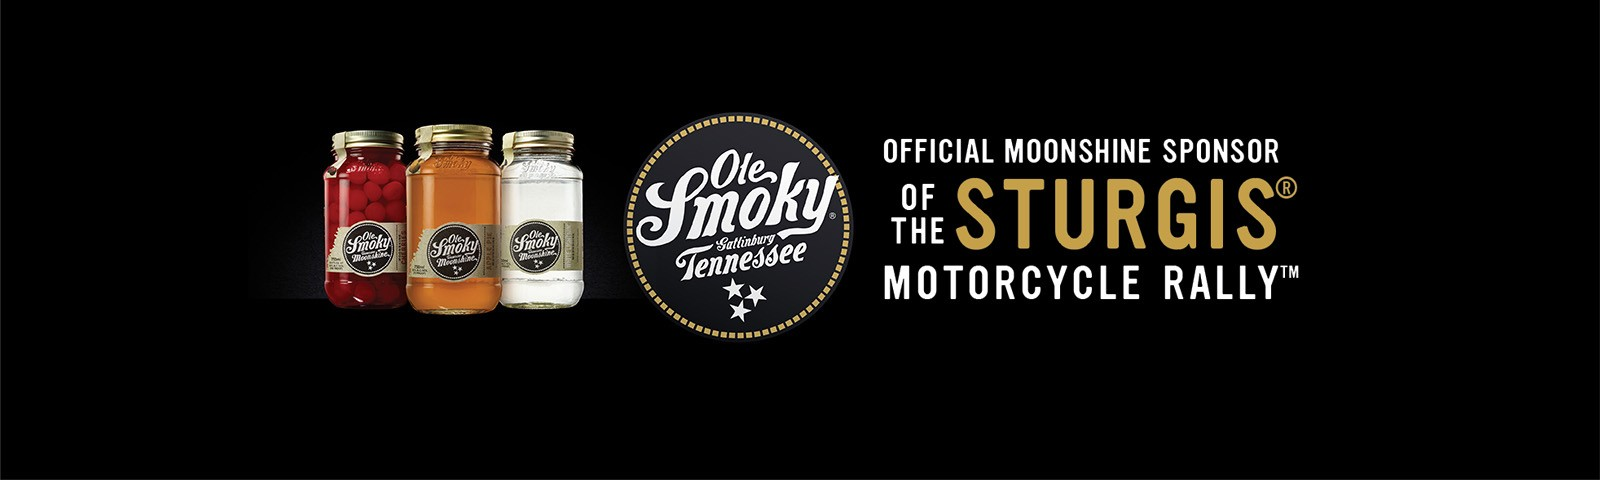 OLE SMOKY IS THE OFFICIAL MOONSHINE SPONSOR OF STURGIS® MOTORCYCLE RALLY™